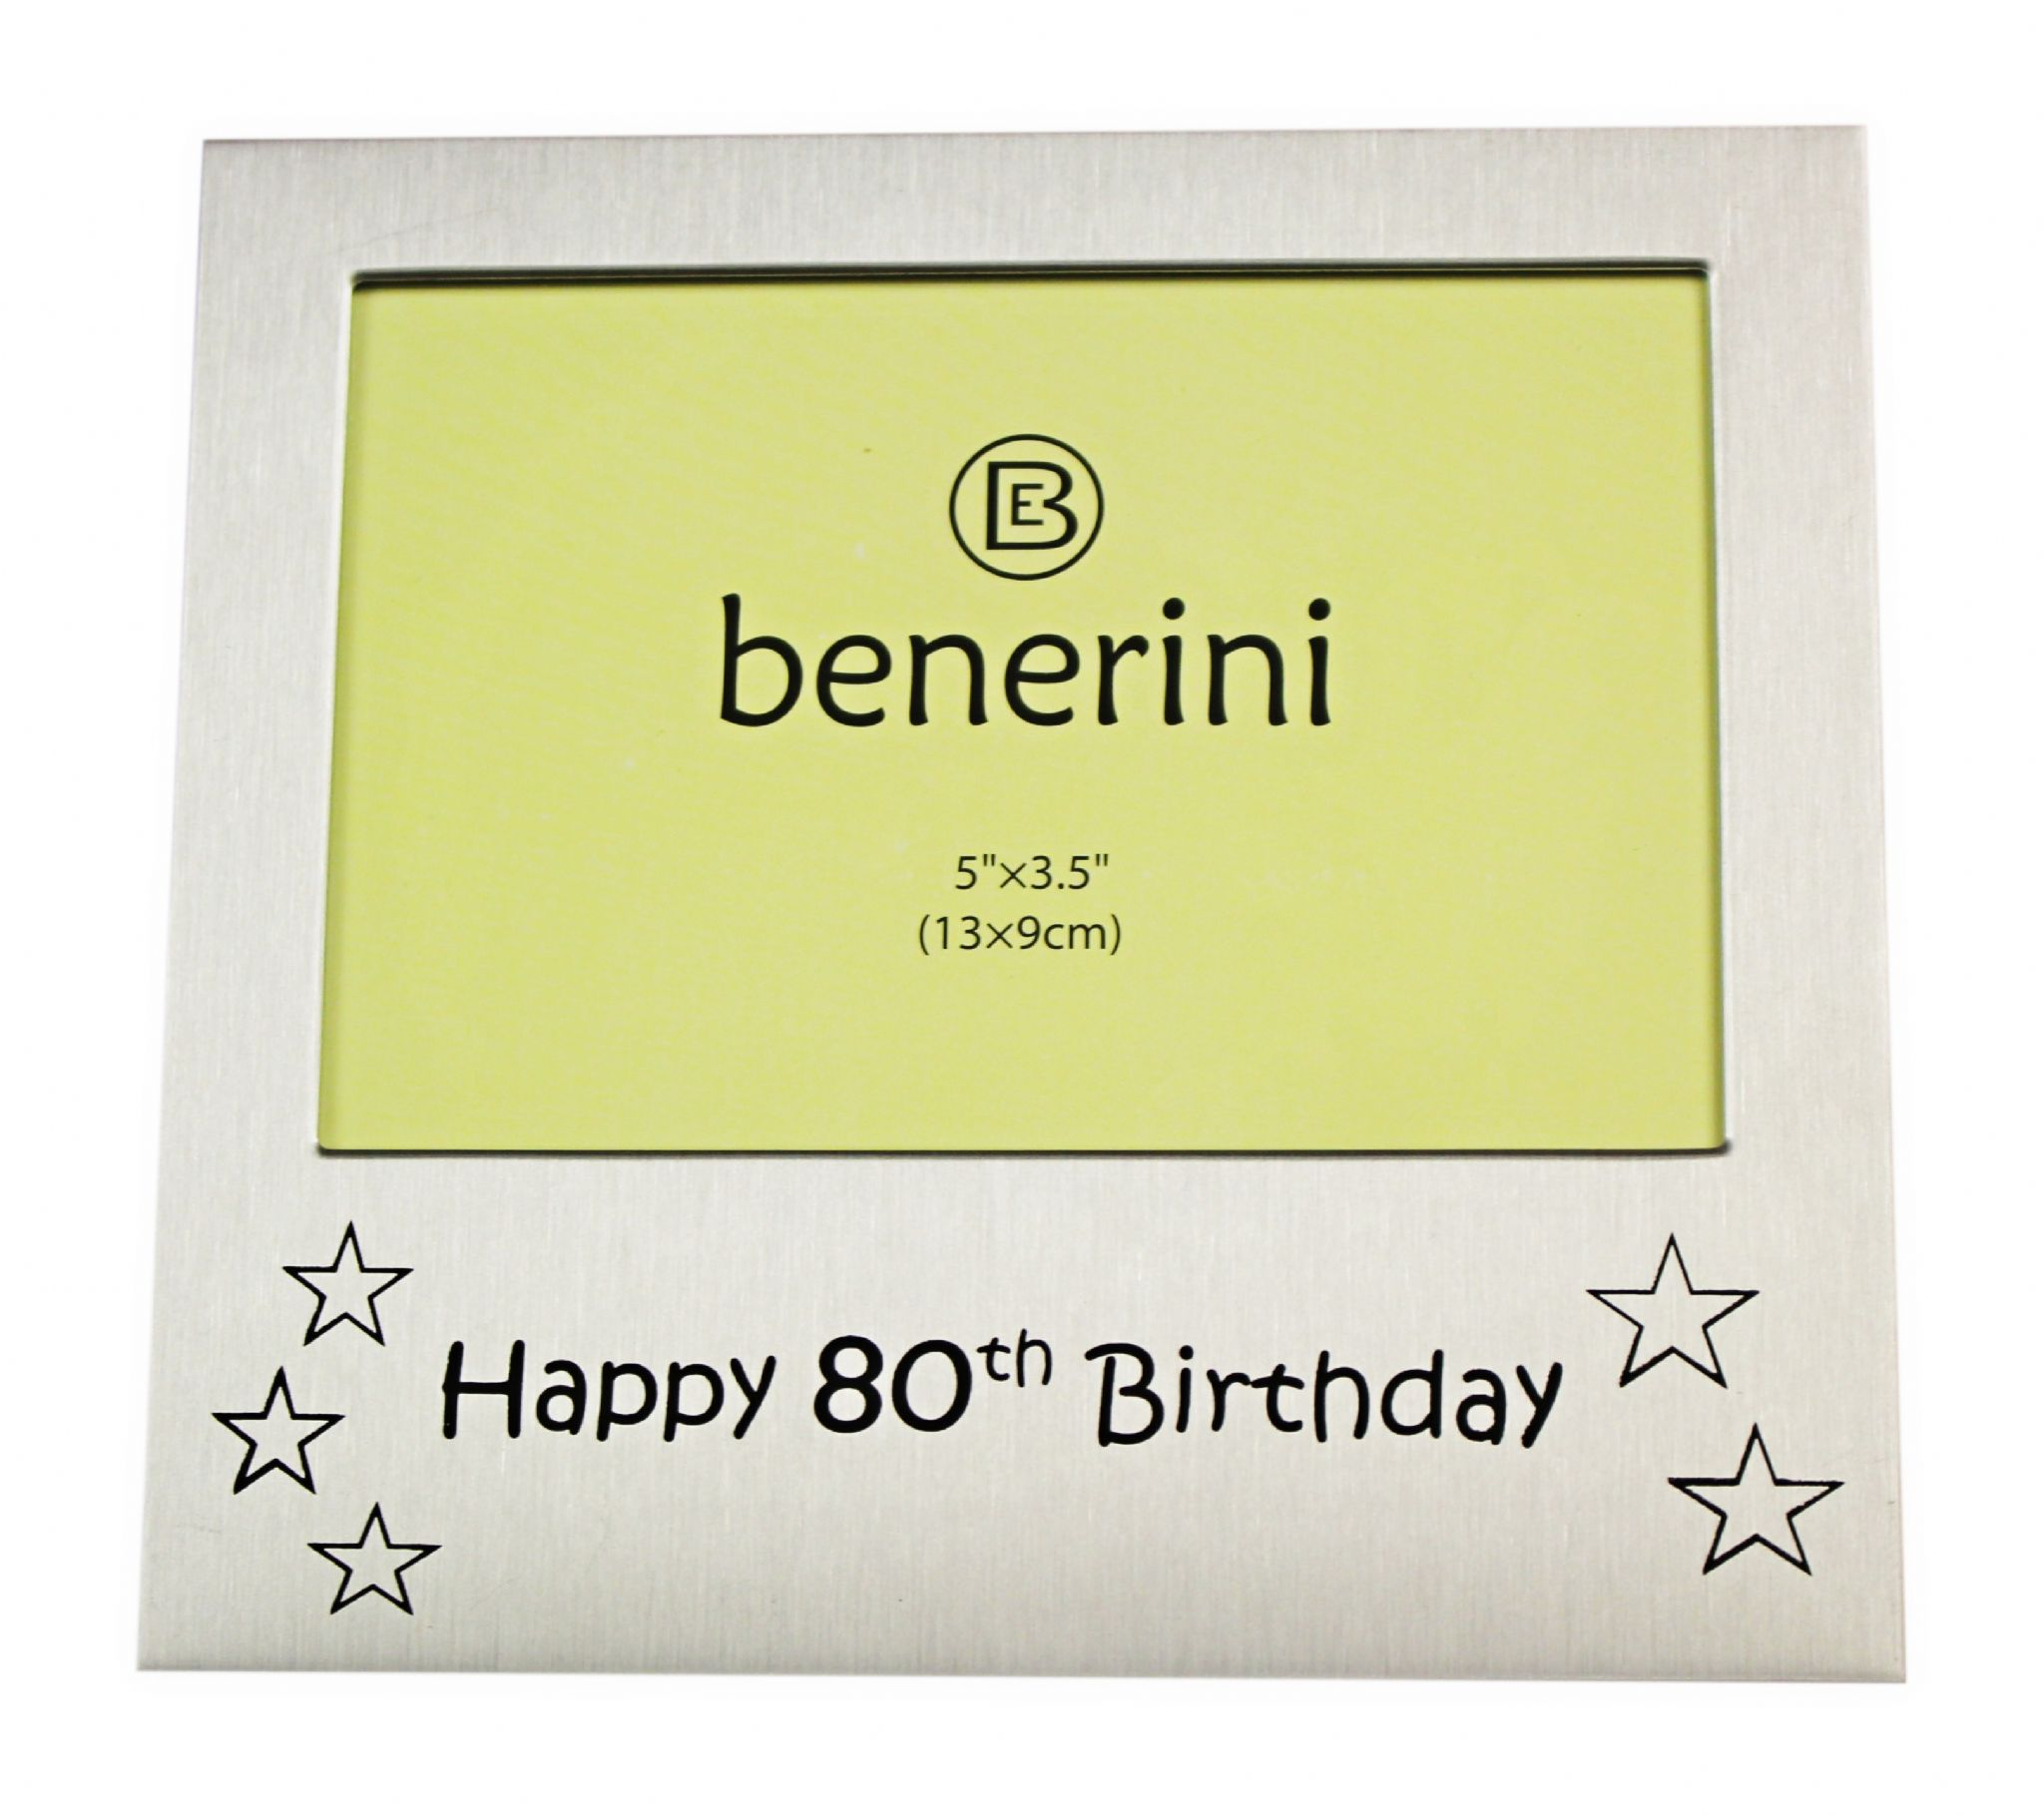 Happy 80th Birthday Photo Frame Gift Photo Size 5 X 35 Inches